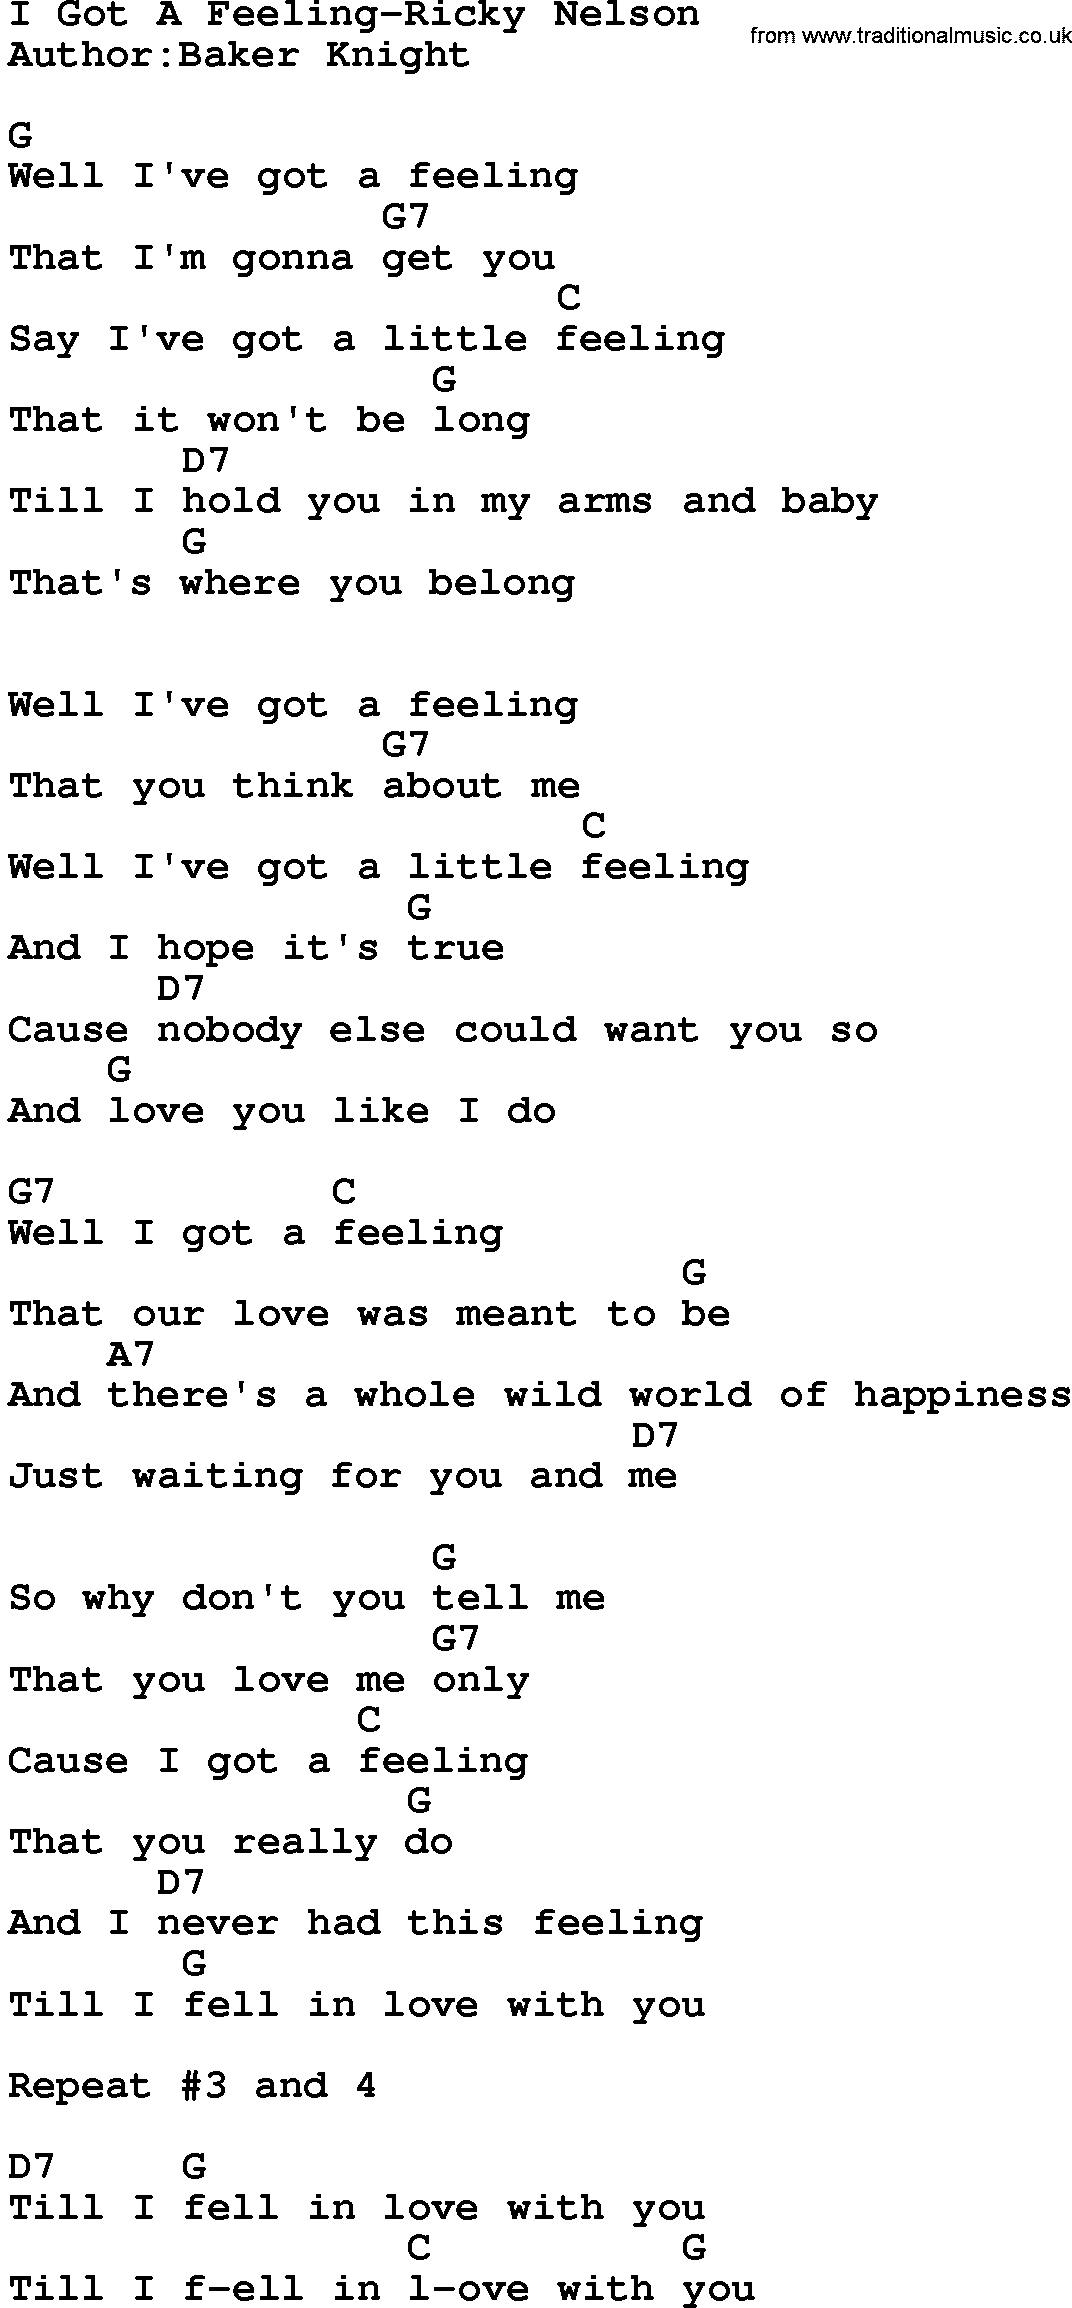 Country Music:I Got A Feeling-Ricky Nelson Lyrics and Chords